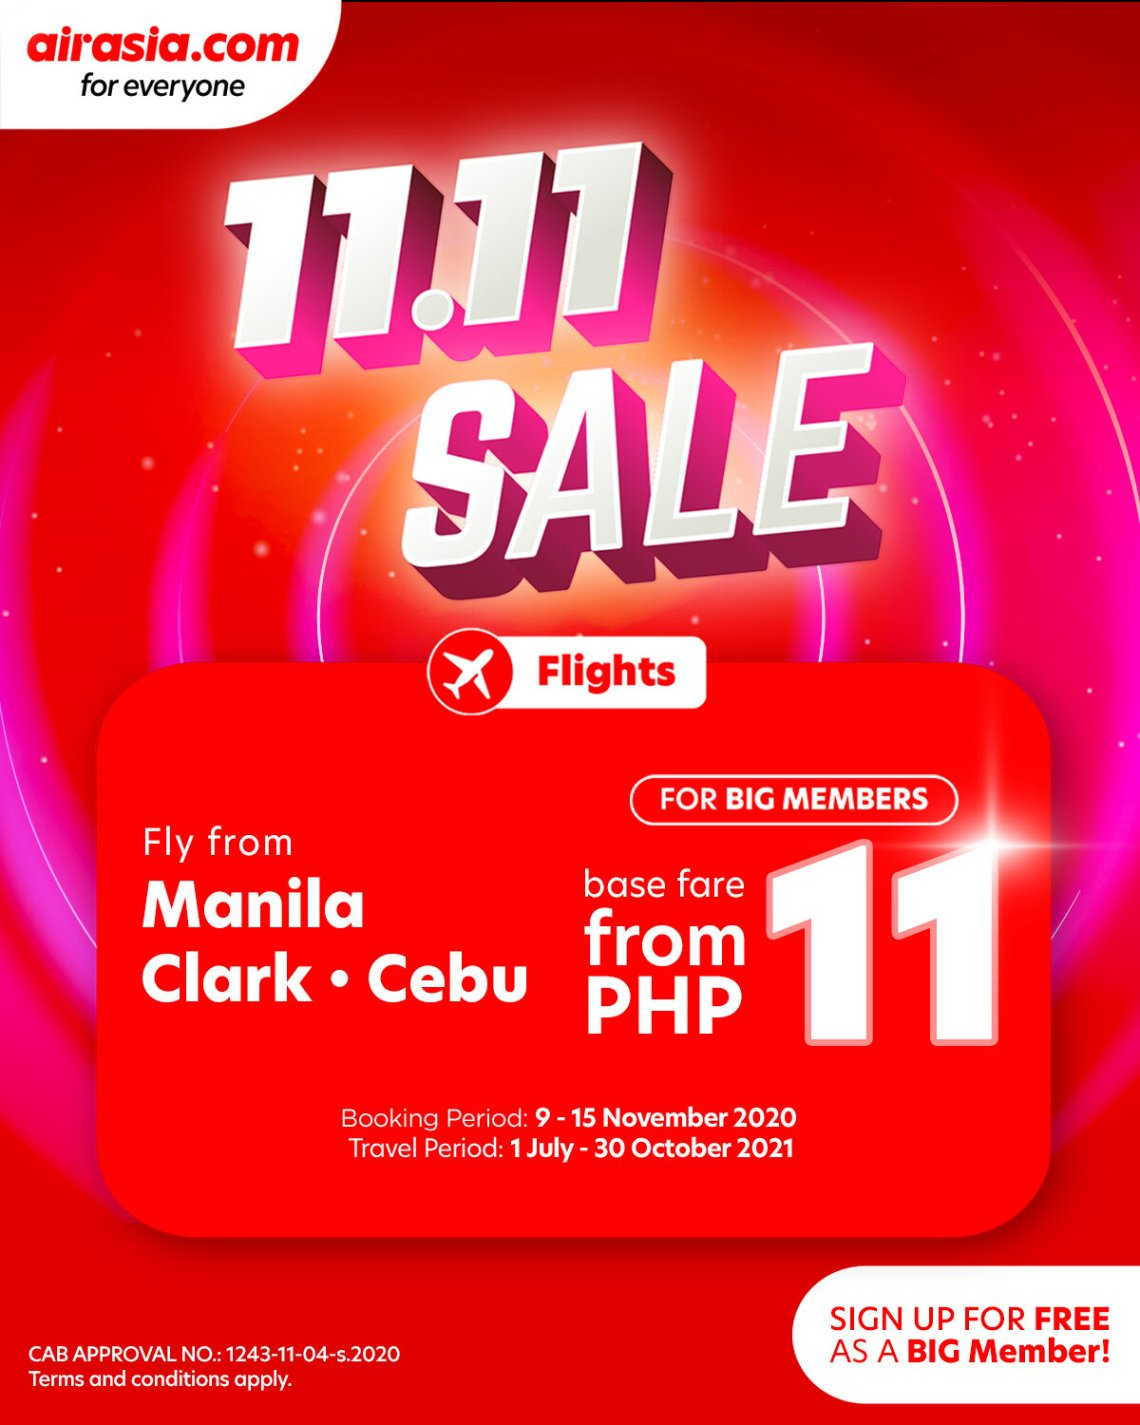 FA WT NOV9 11.11 RED FLASH SALE KV SMPOST NOV2020.jpg